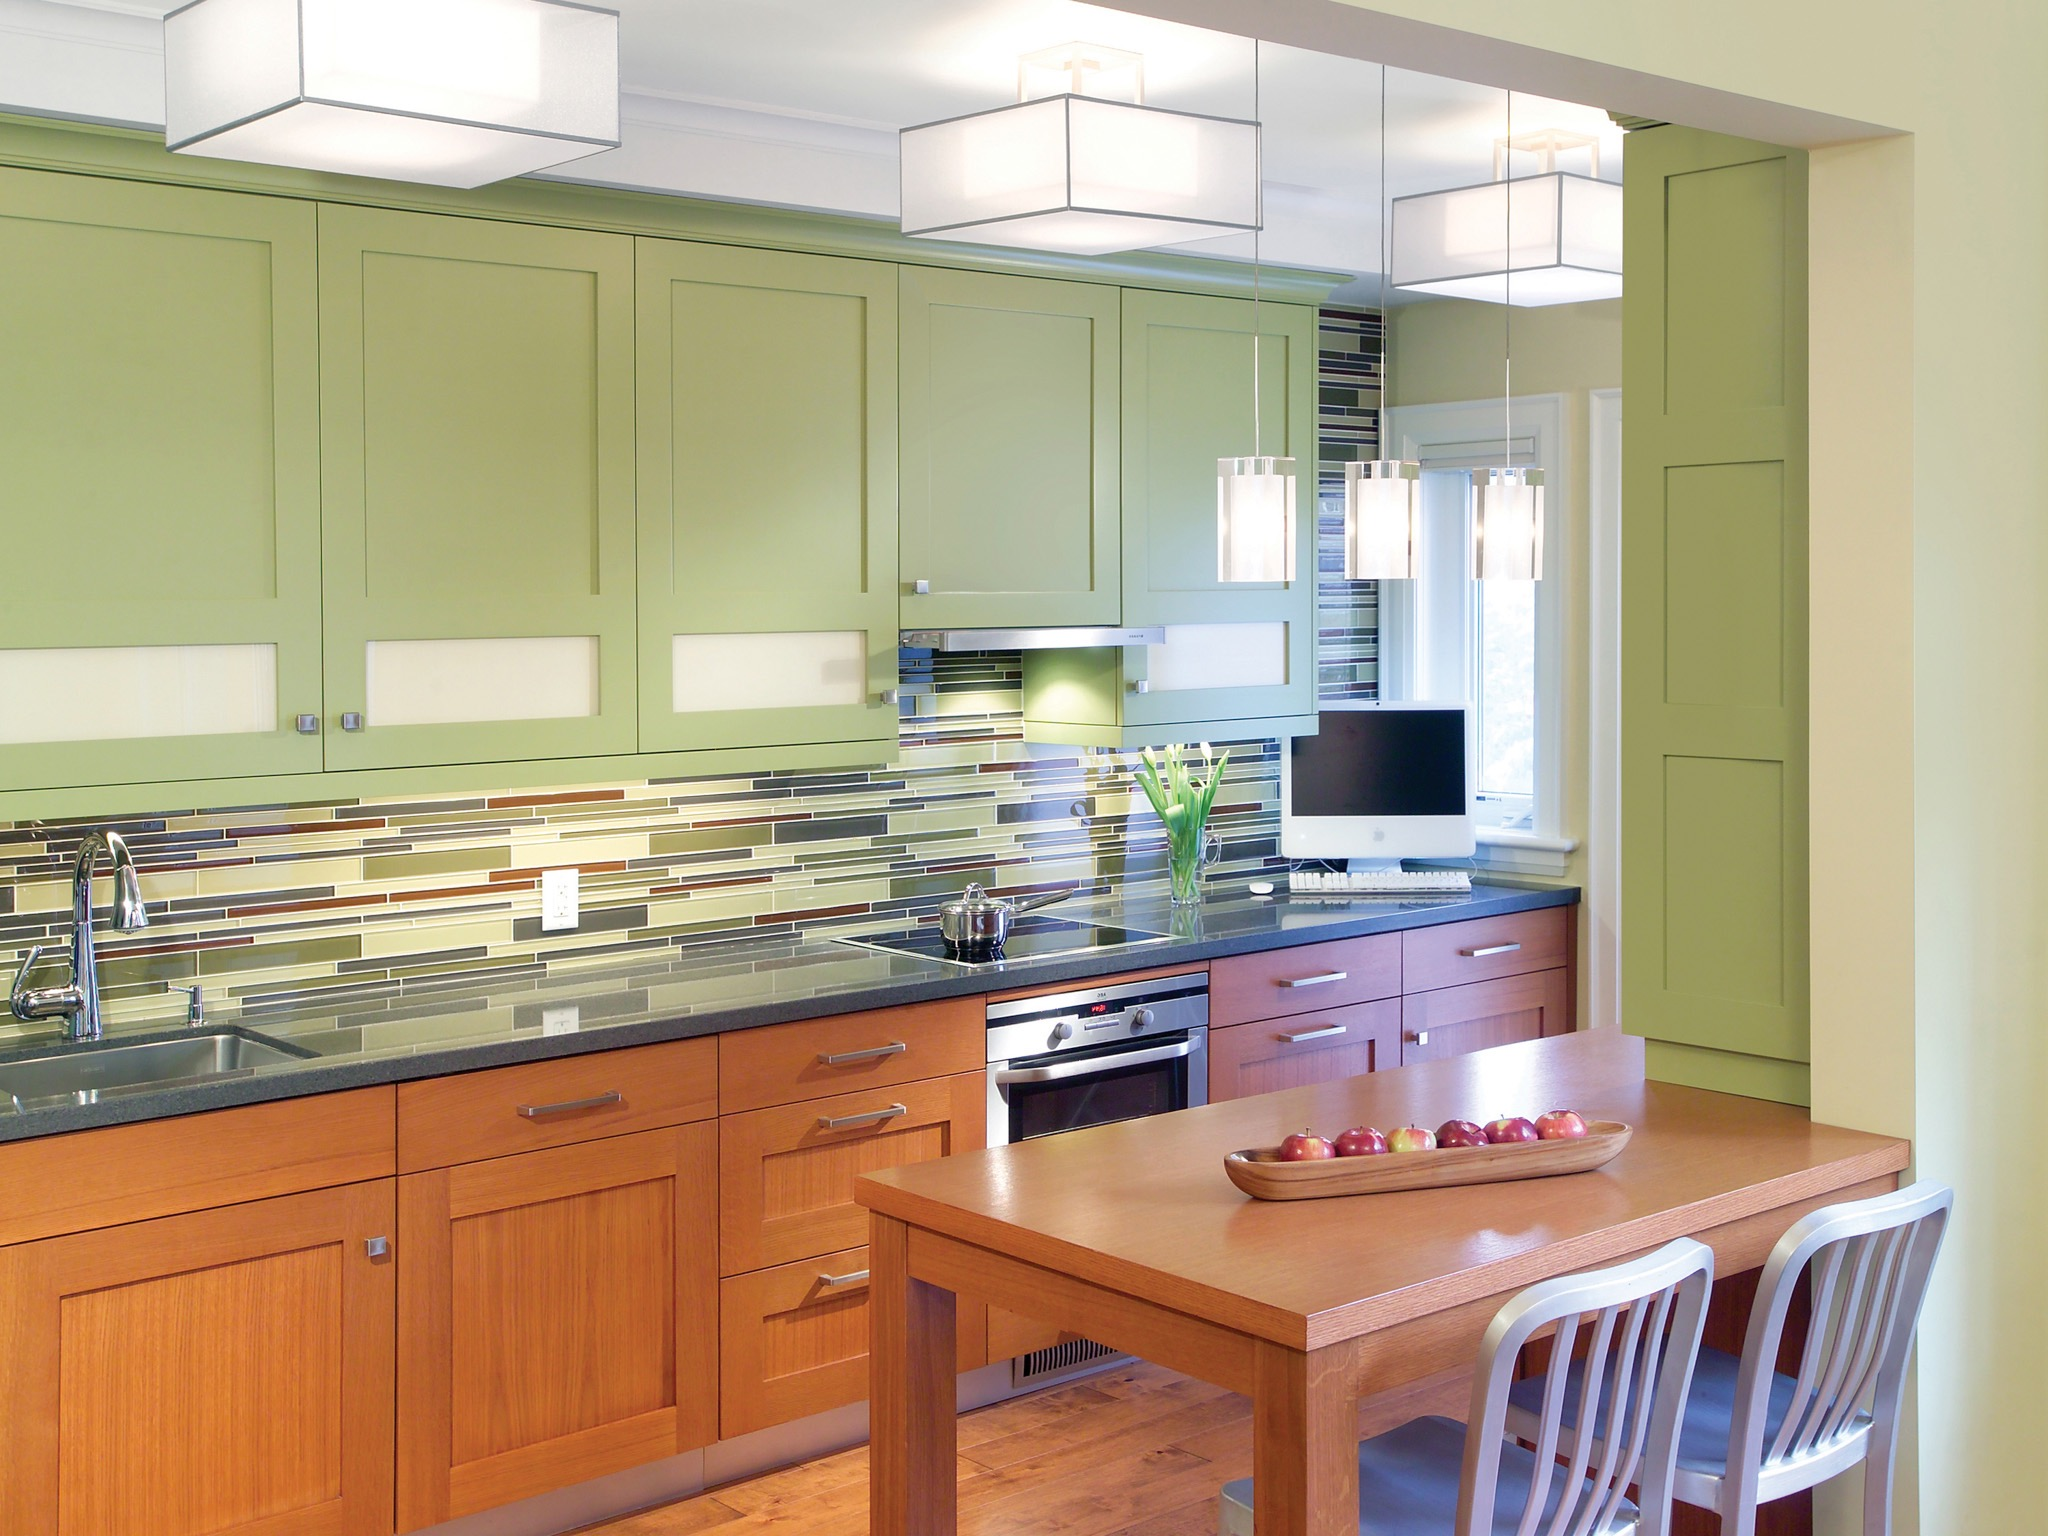 Green Kitchen Cabinets For Fresh Look Image 9 Of 18